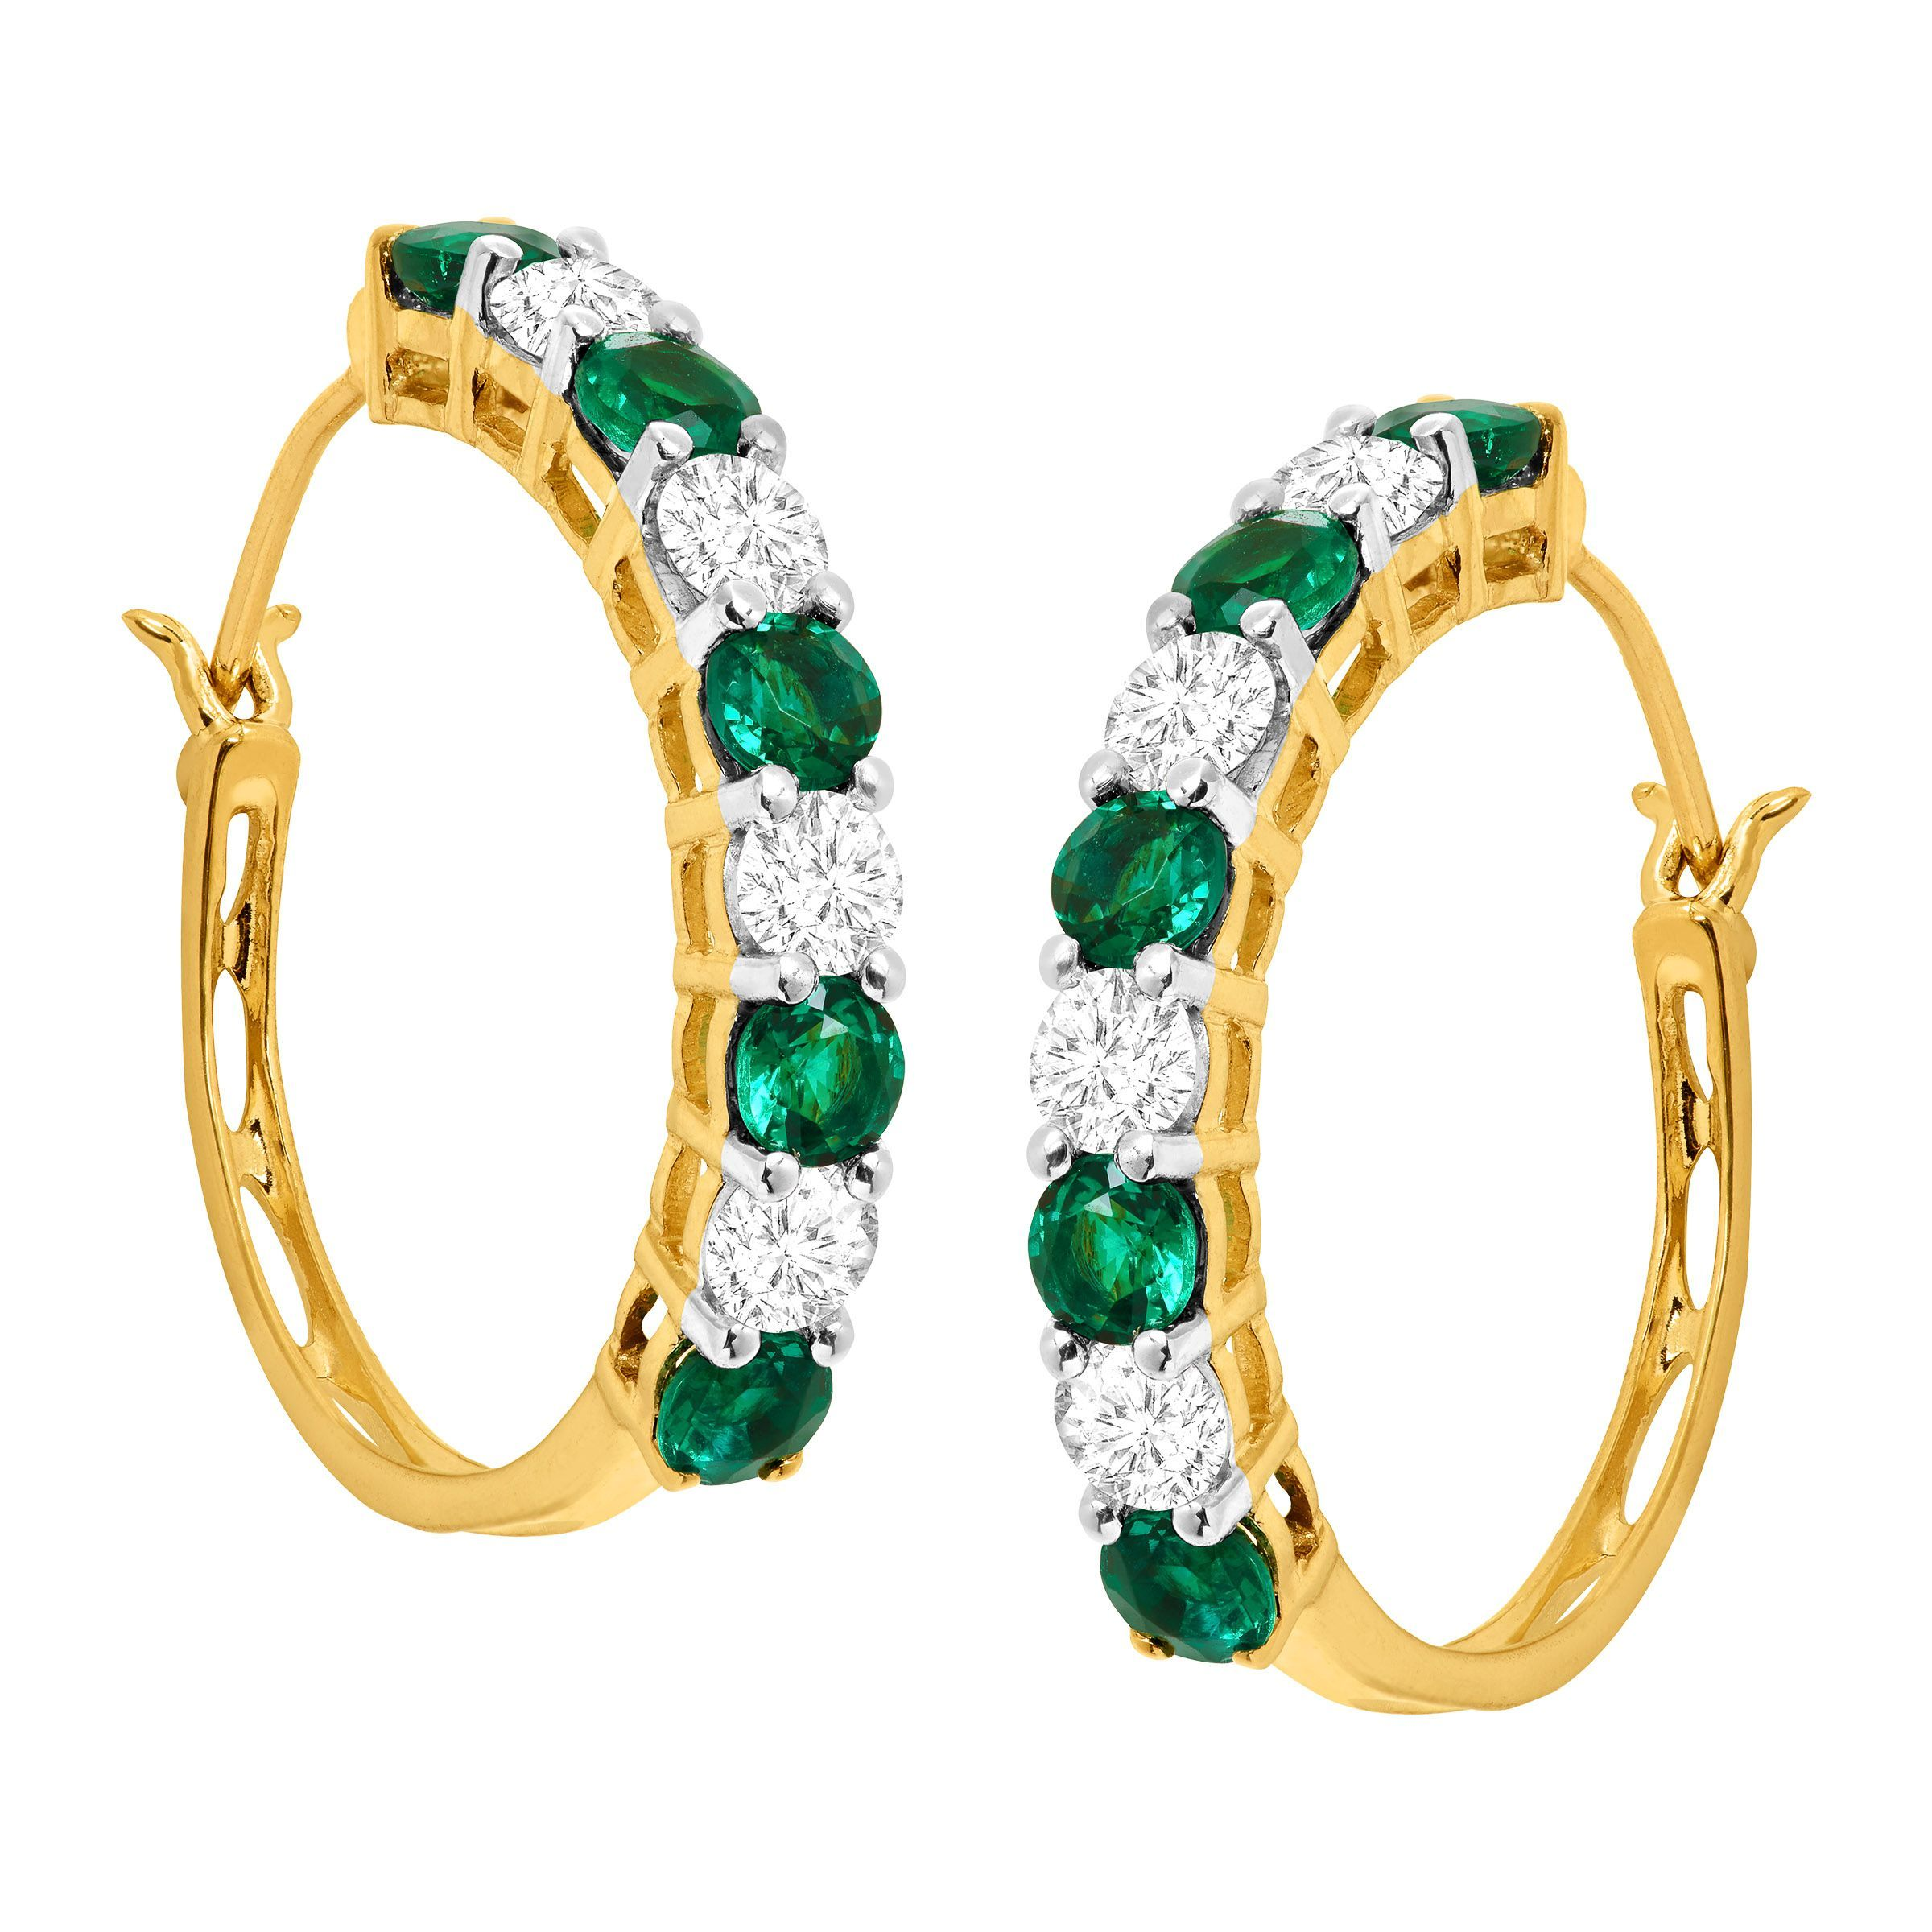 jewelryum lab cute product emerald and jewellery contact gold in emeralds natural new diamonds simple sapphire cluster elegant earrings us marquise rose blog